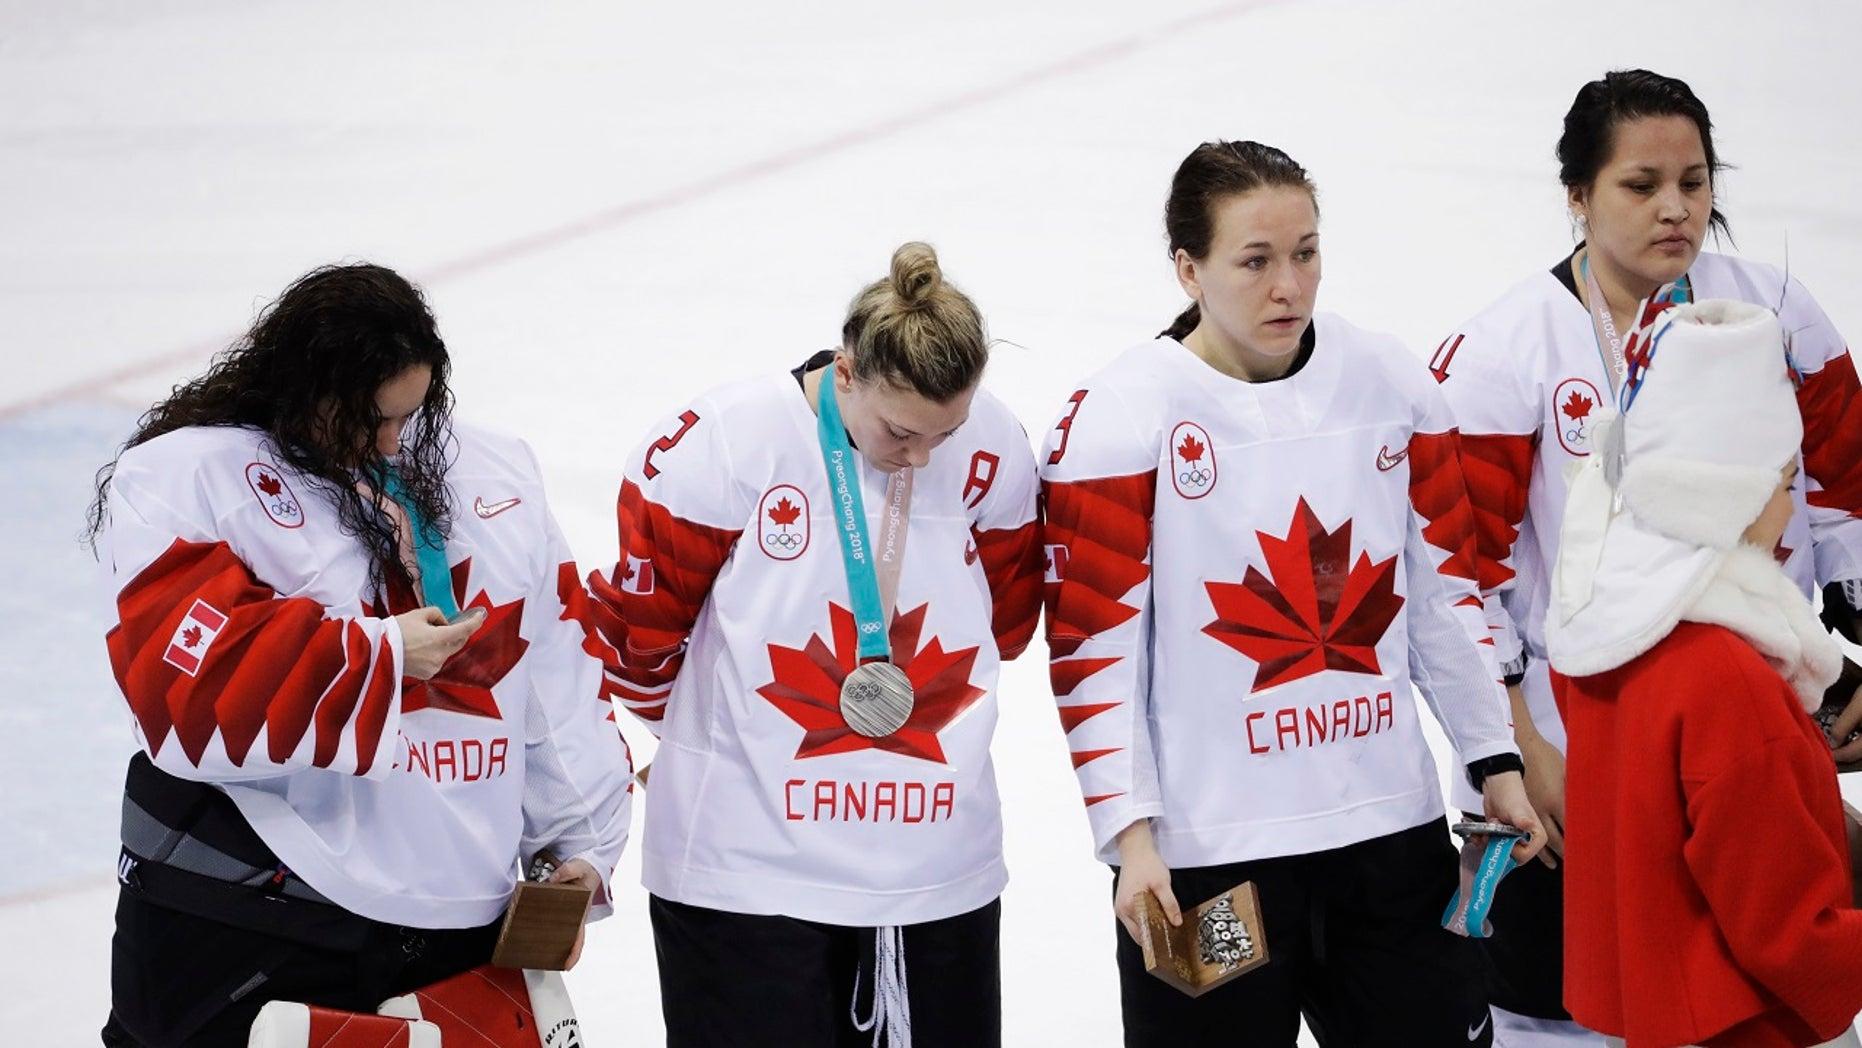 The Canadian women's hockey won the silver medal, after losing the the United States in the championship game on Thursday.